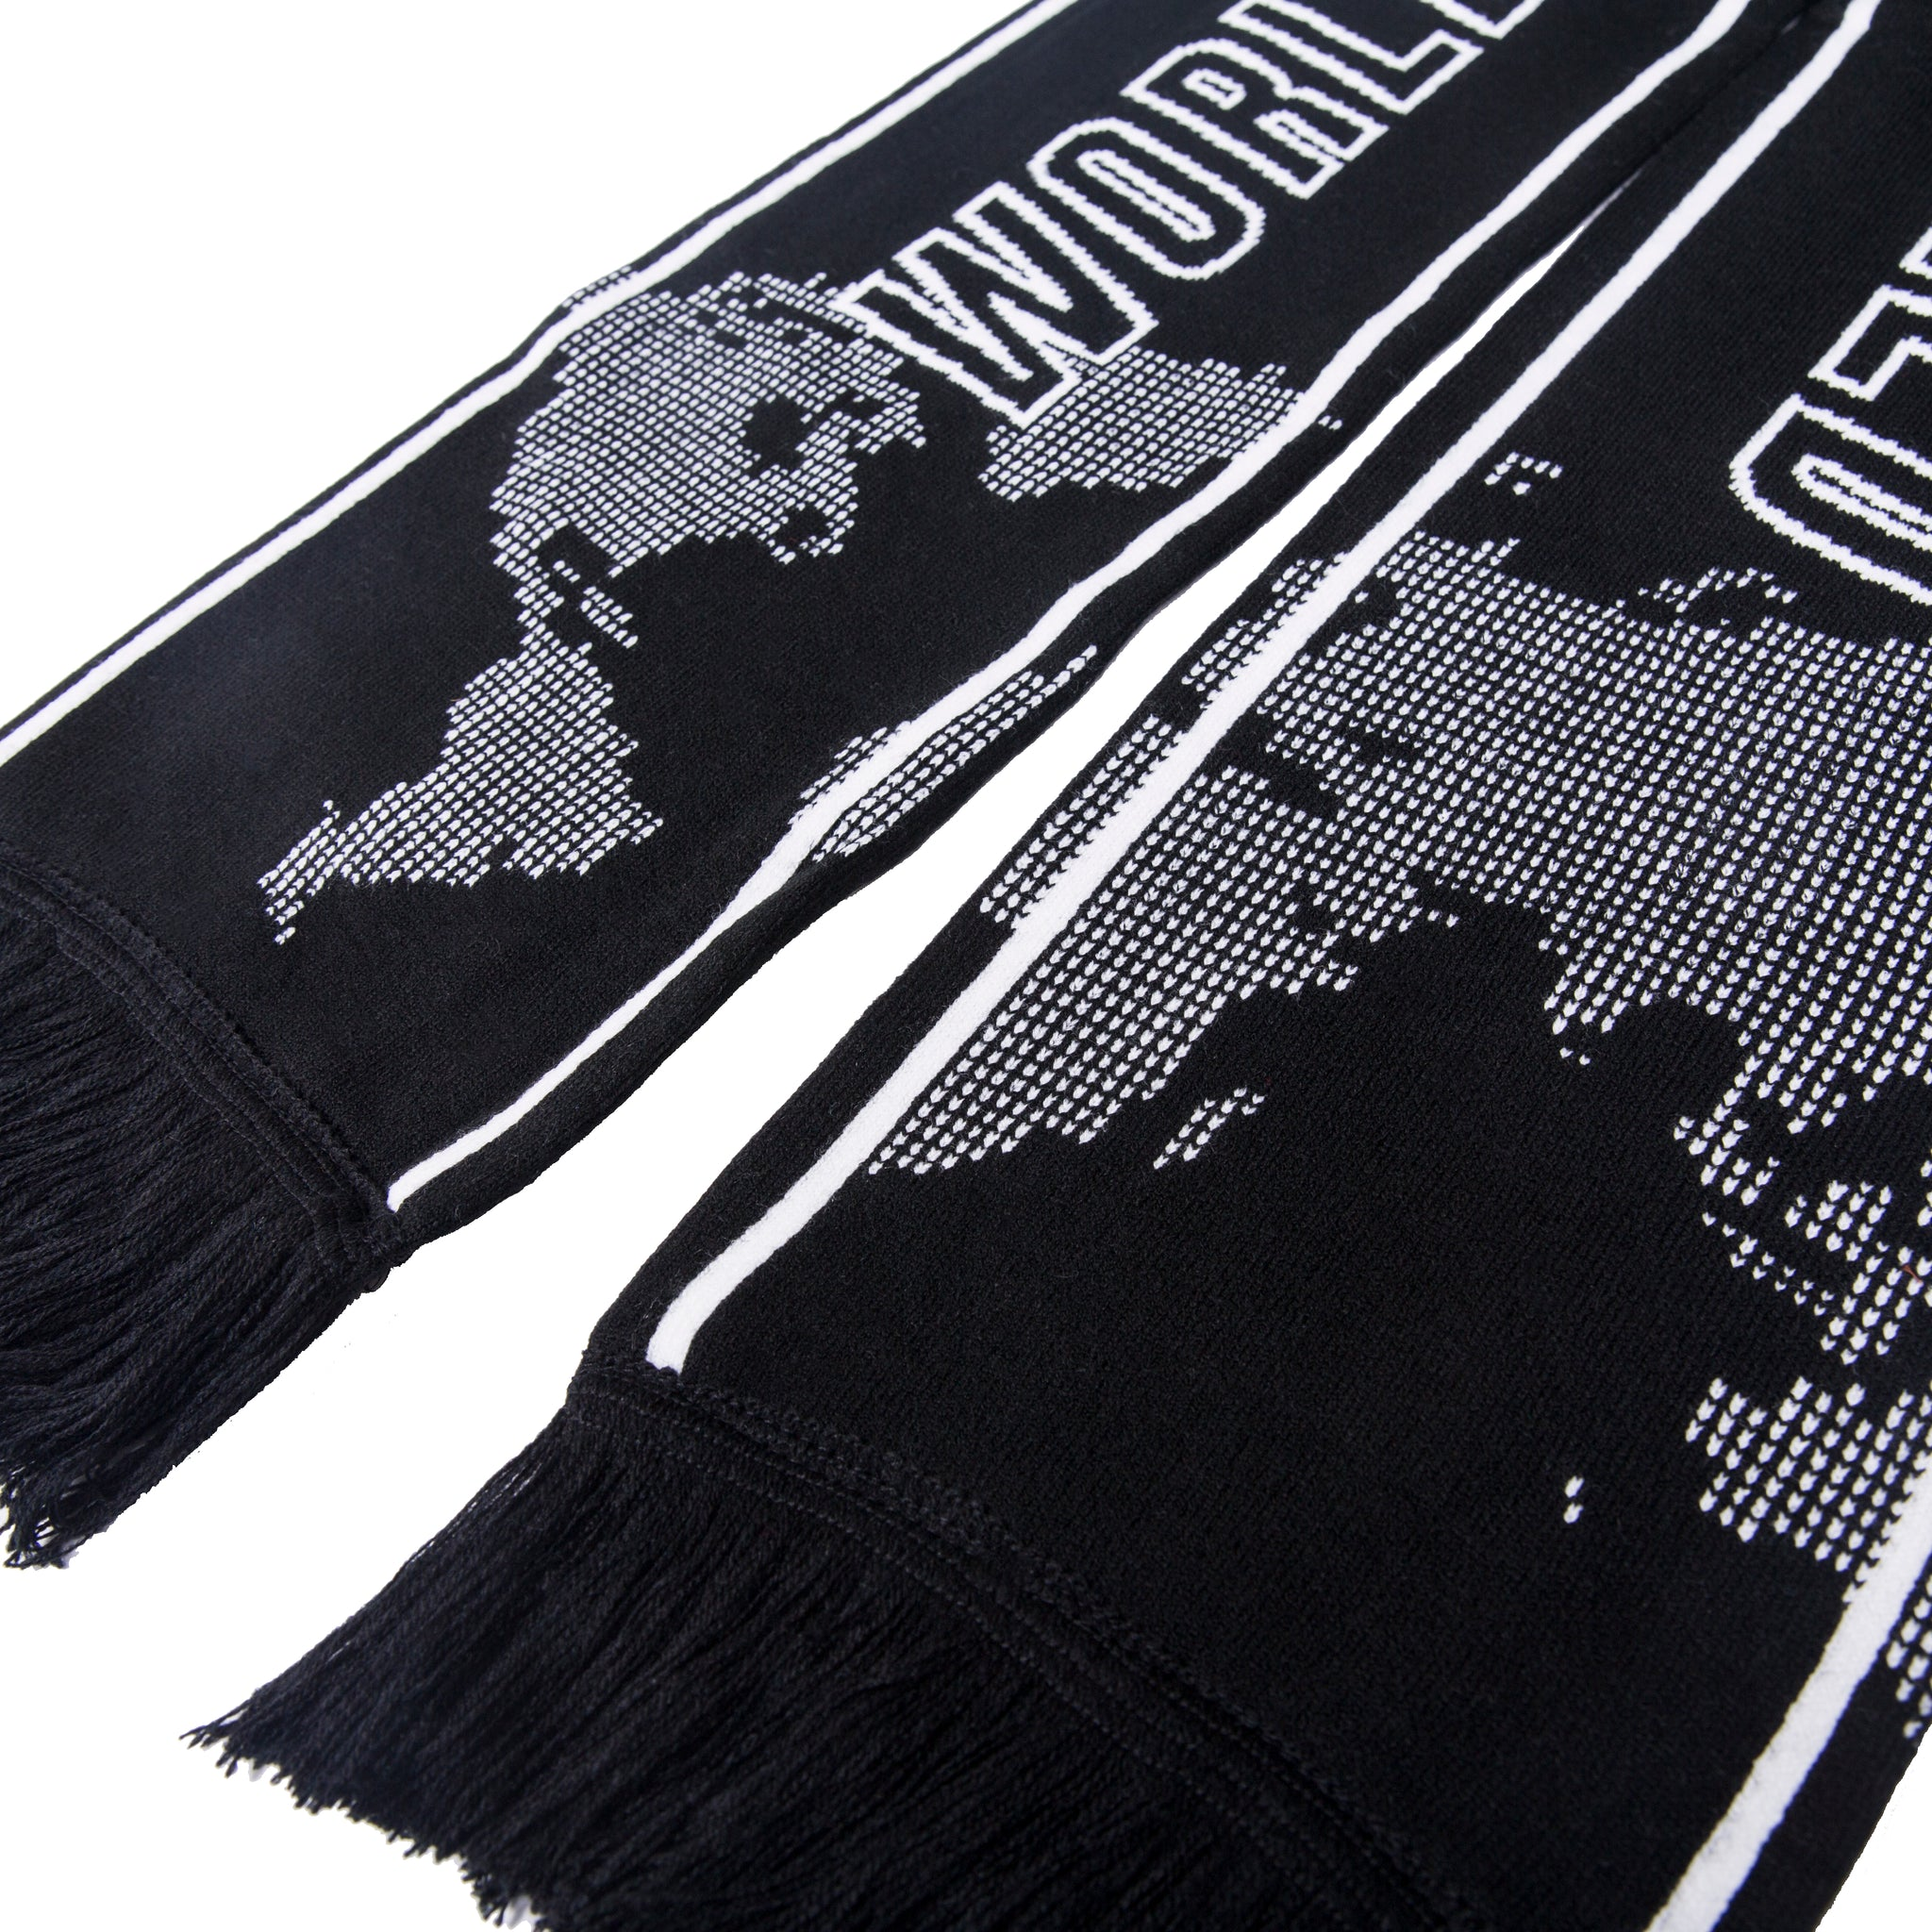 World Champion Scarf / Black & White